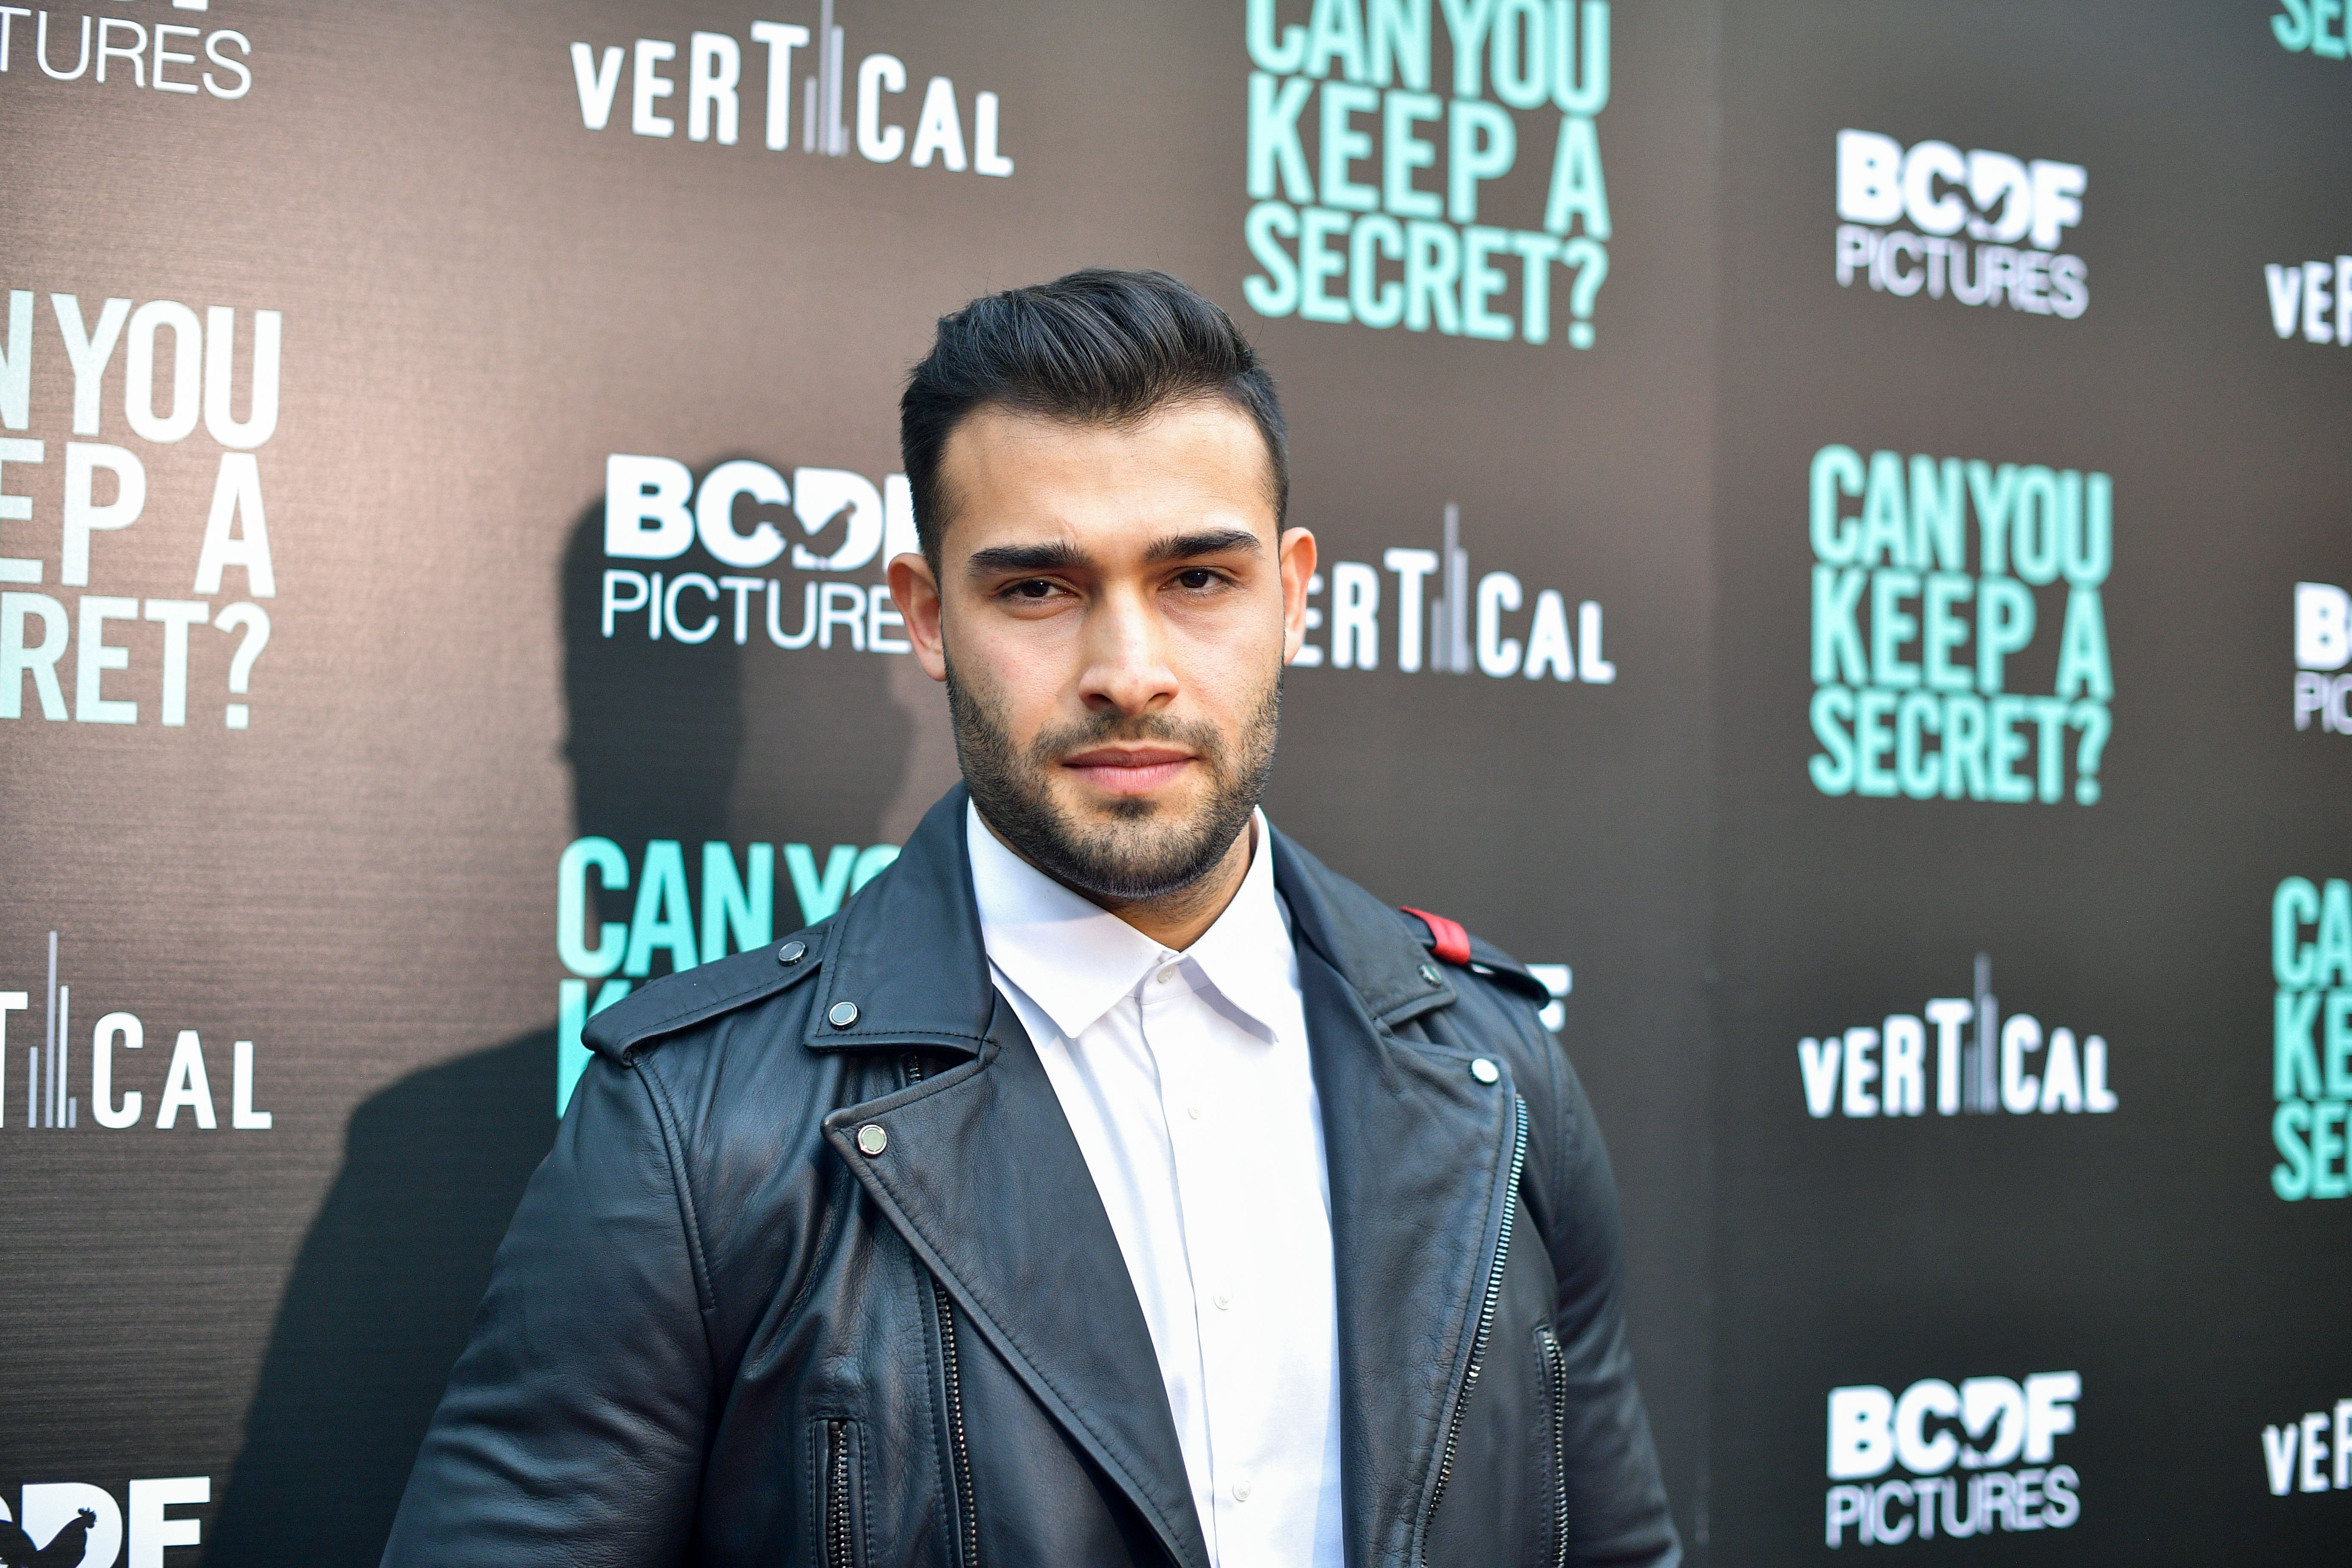 """Sam Asghari at the premiere of """"Can You Keep A Secret?"""" at ArcLight Hollywood in California 